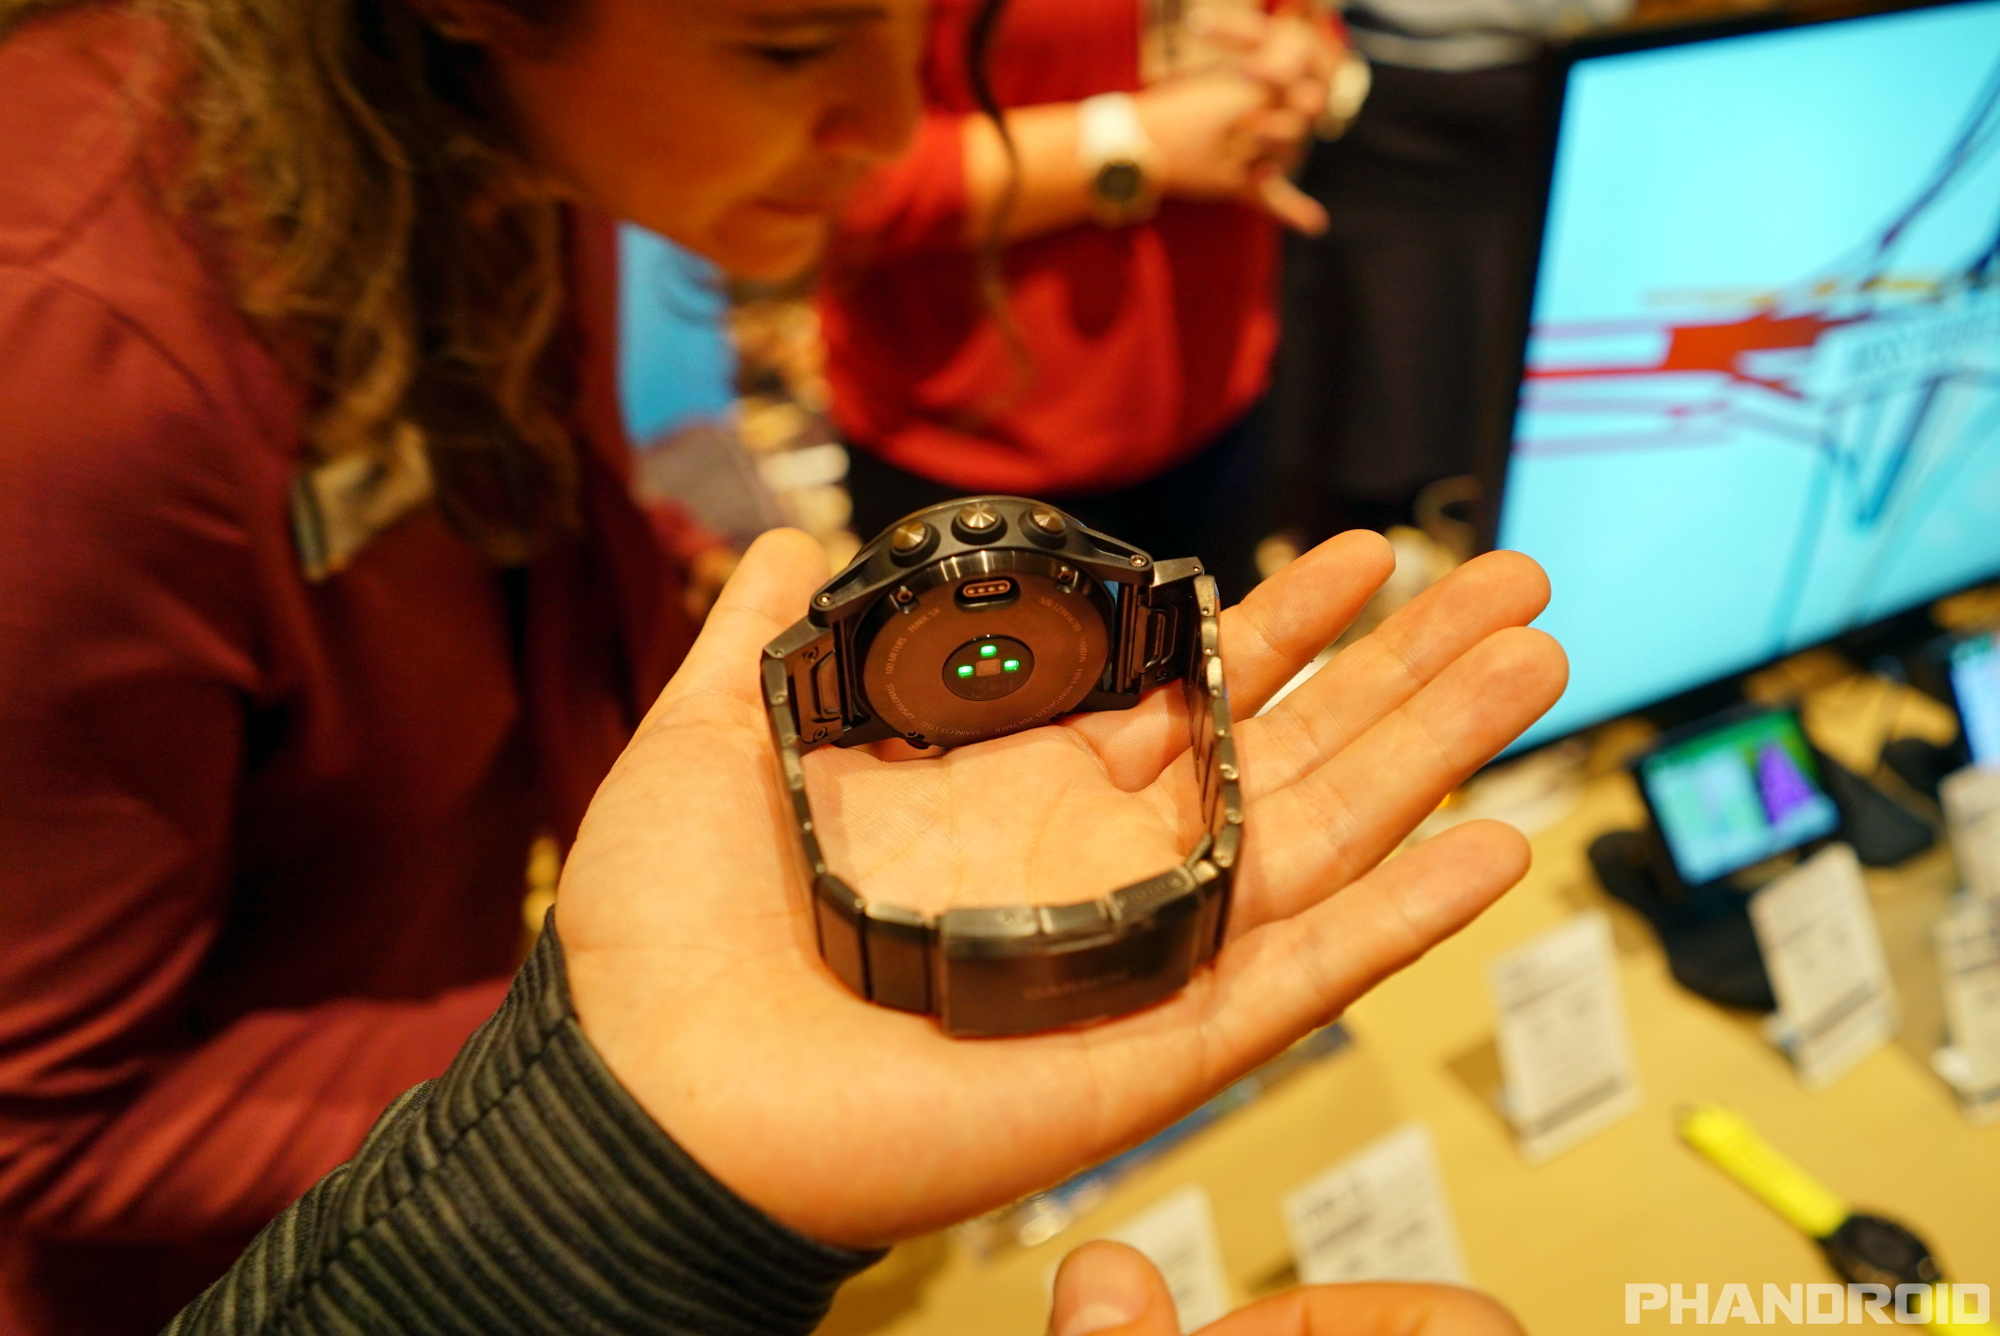 Hands-on with 3 new smartwatches from Garmin